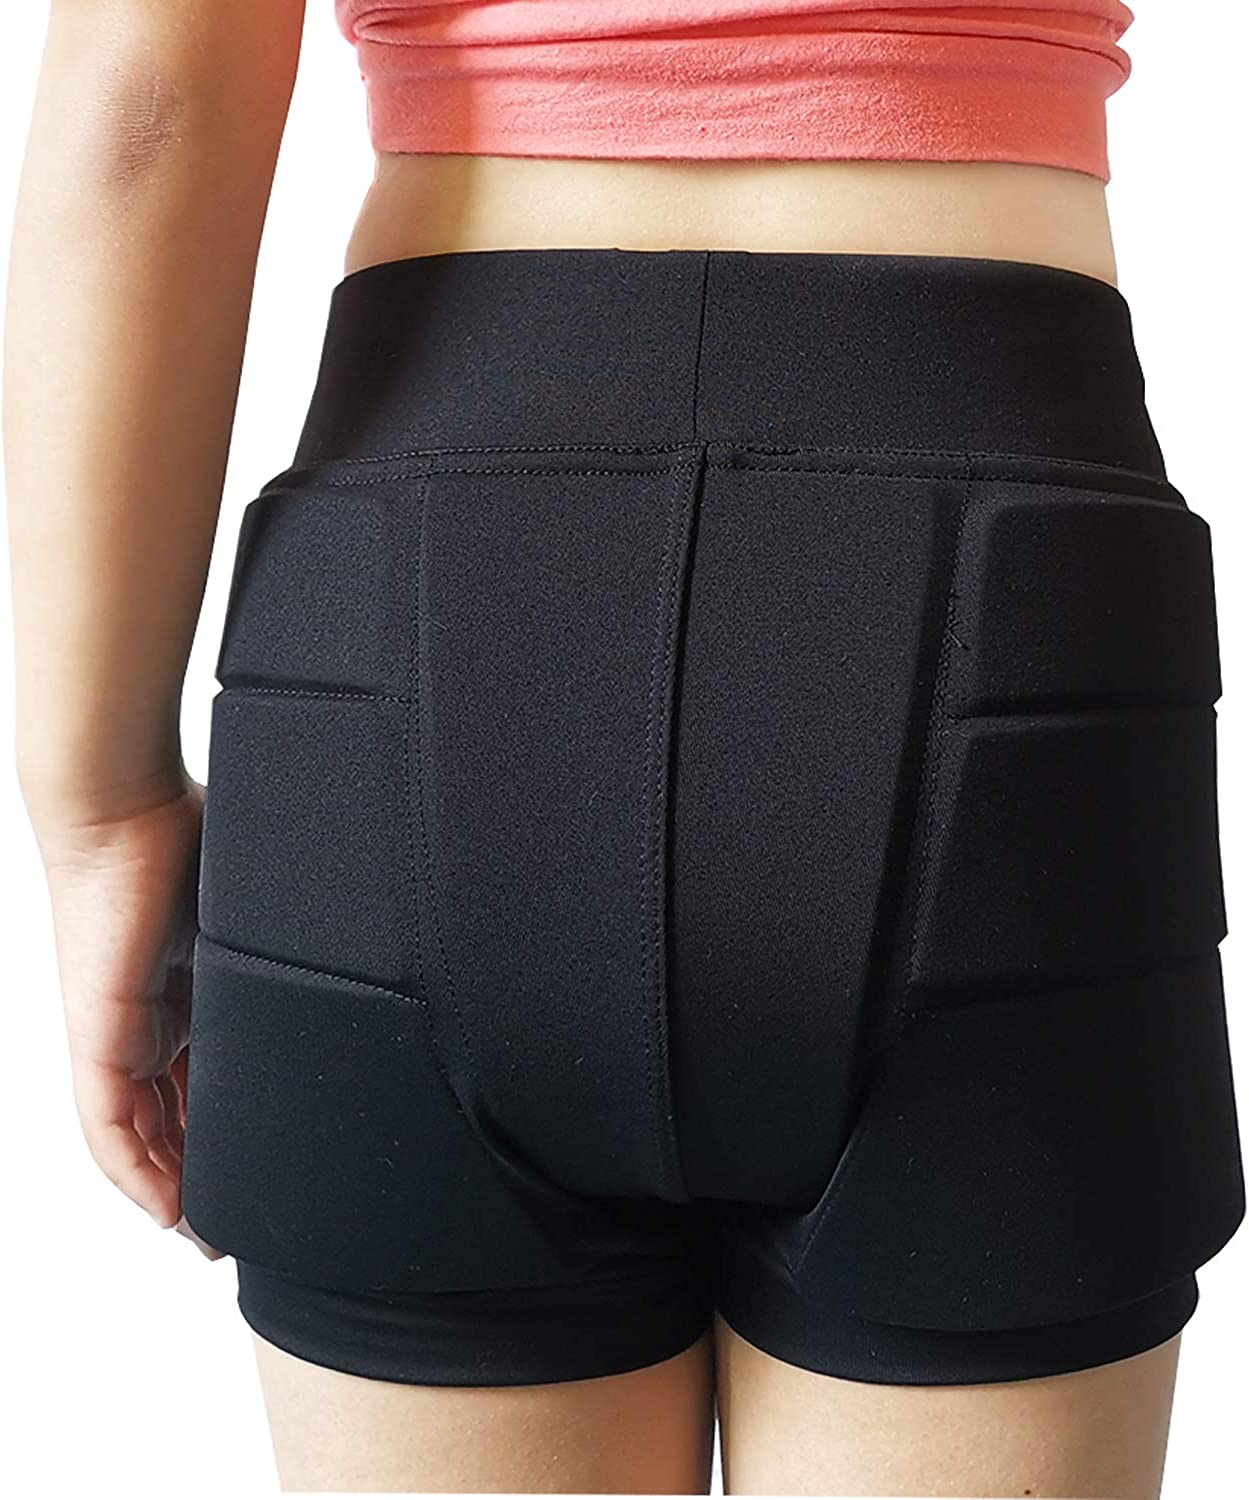 Youper Girls Protective Padded Shorts for Skating, Skateboarding, 3D Protection for Hip & Tailbone: Clothing